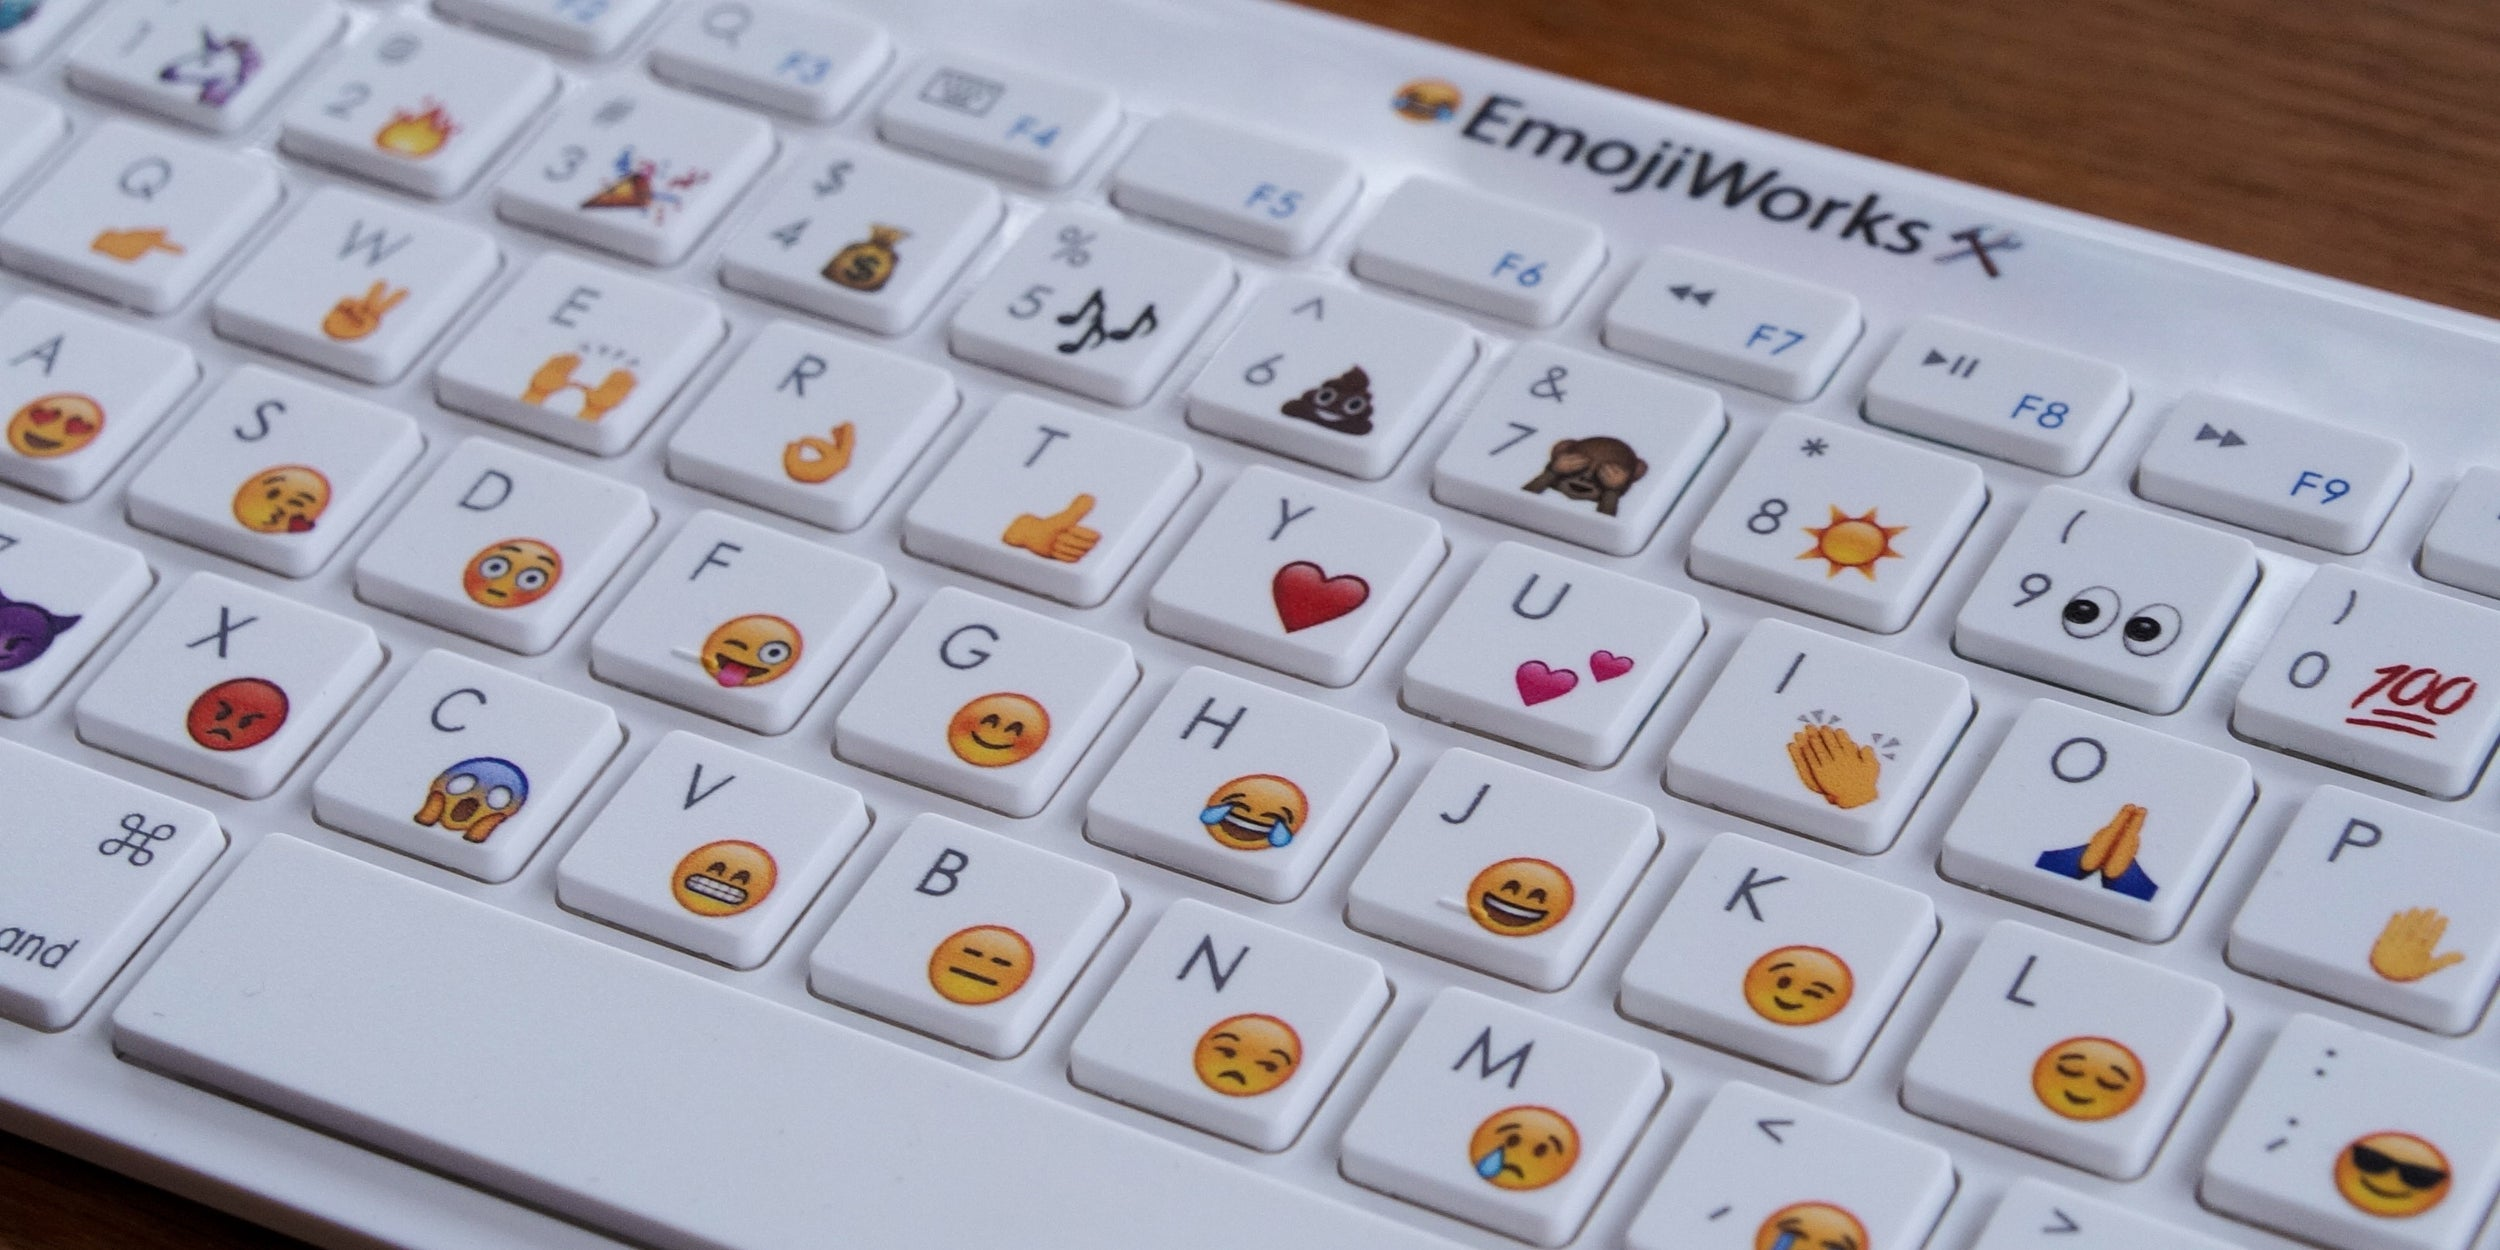 You Can Finally Buy a Dedicated Hardware Emoji Keyboard